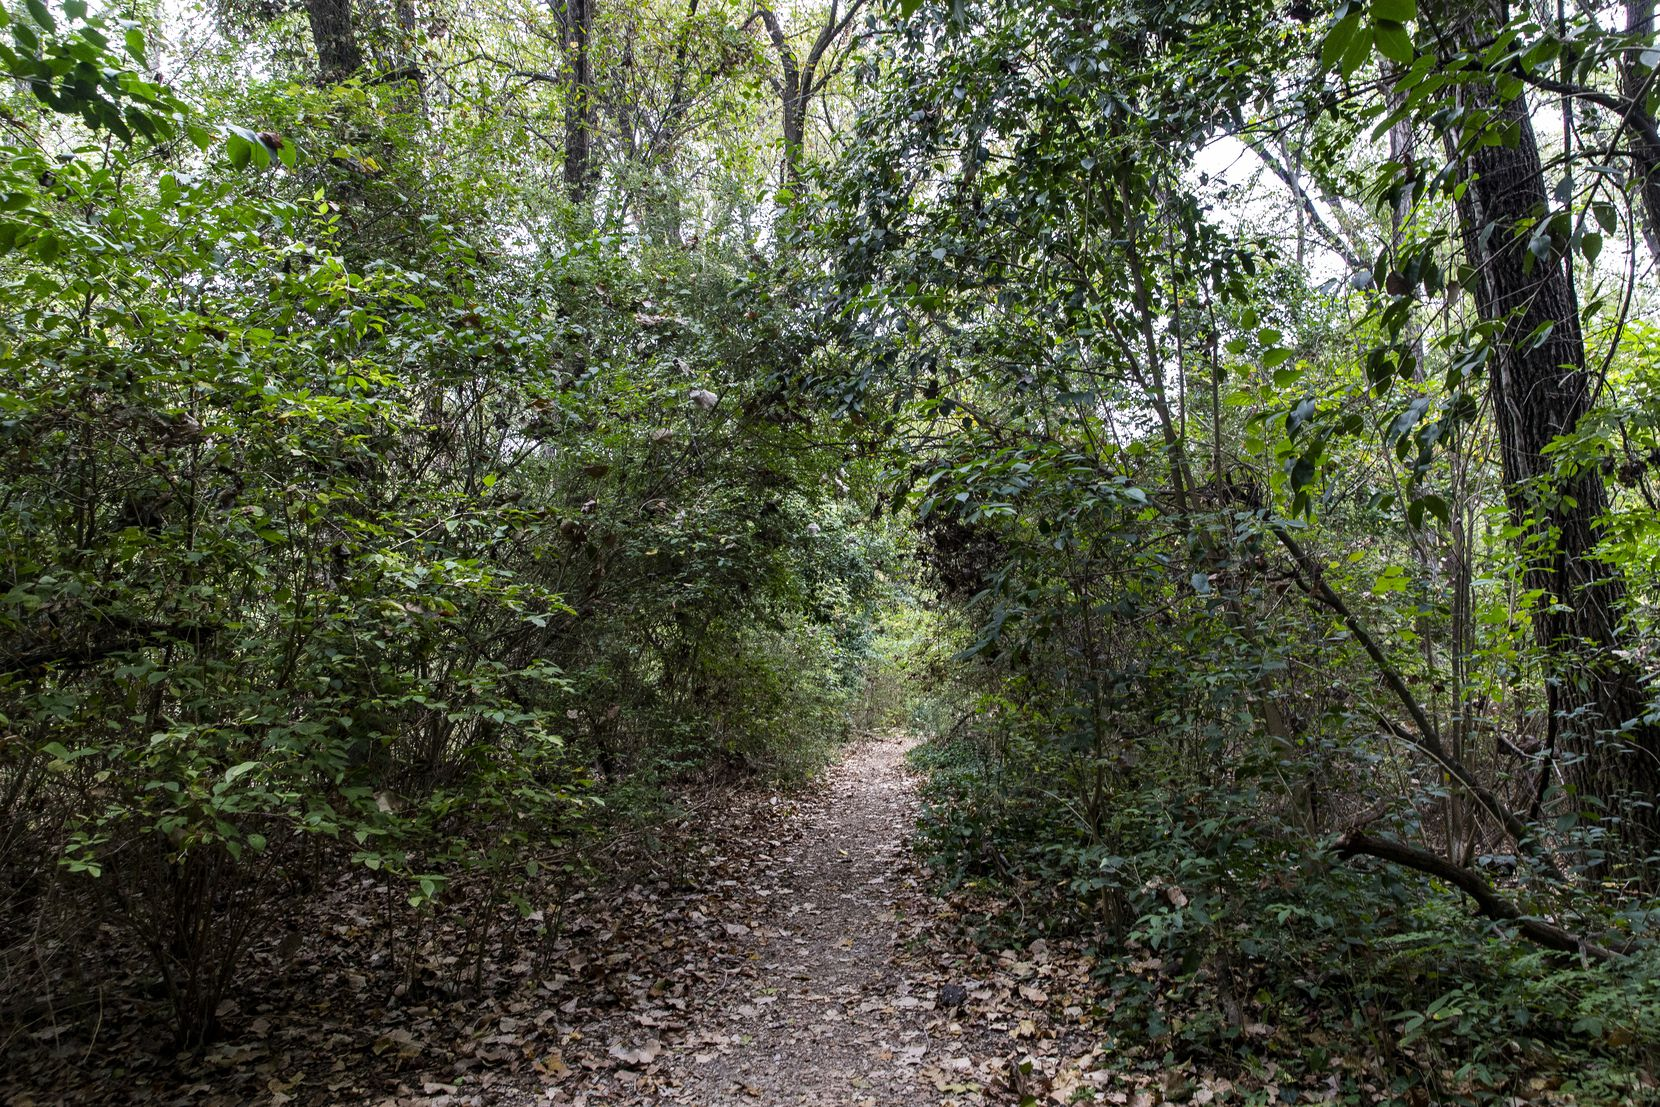 """Foliage arches over the footpaths of the Old Fish Hatchery nature area. """"It's a special place,"""" District 9 City Council member Paula Blackmon says. """"Once you get in there, you lose track of time — and that you are even in Dallas."""""""